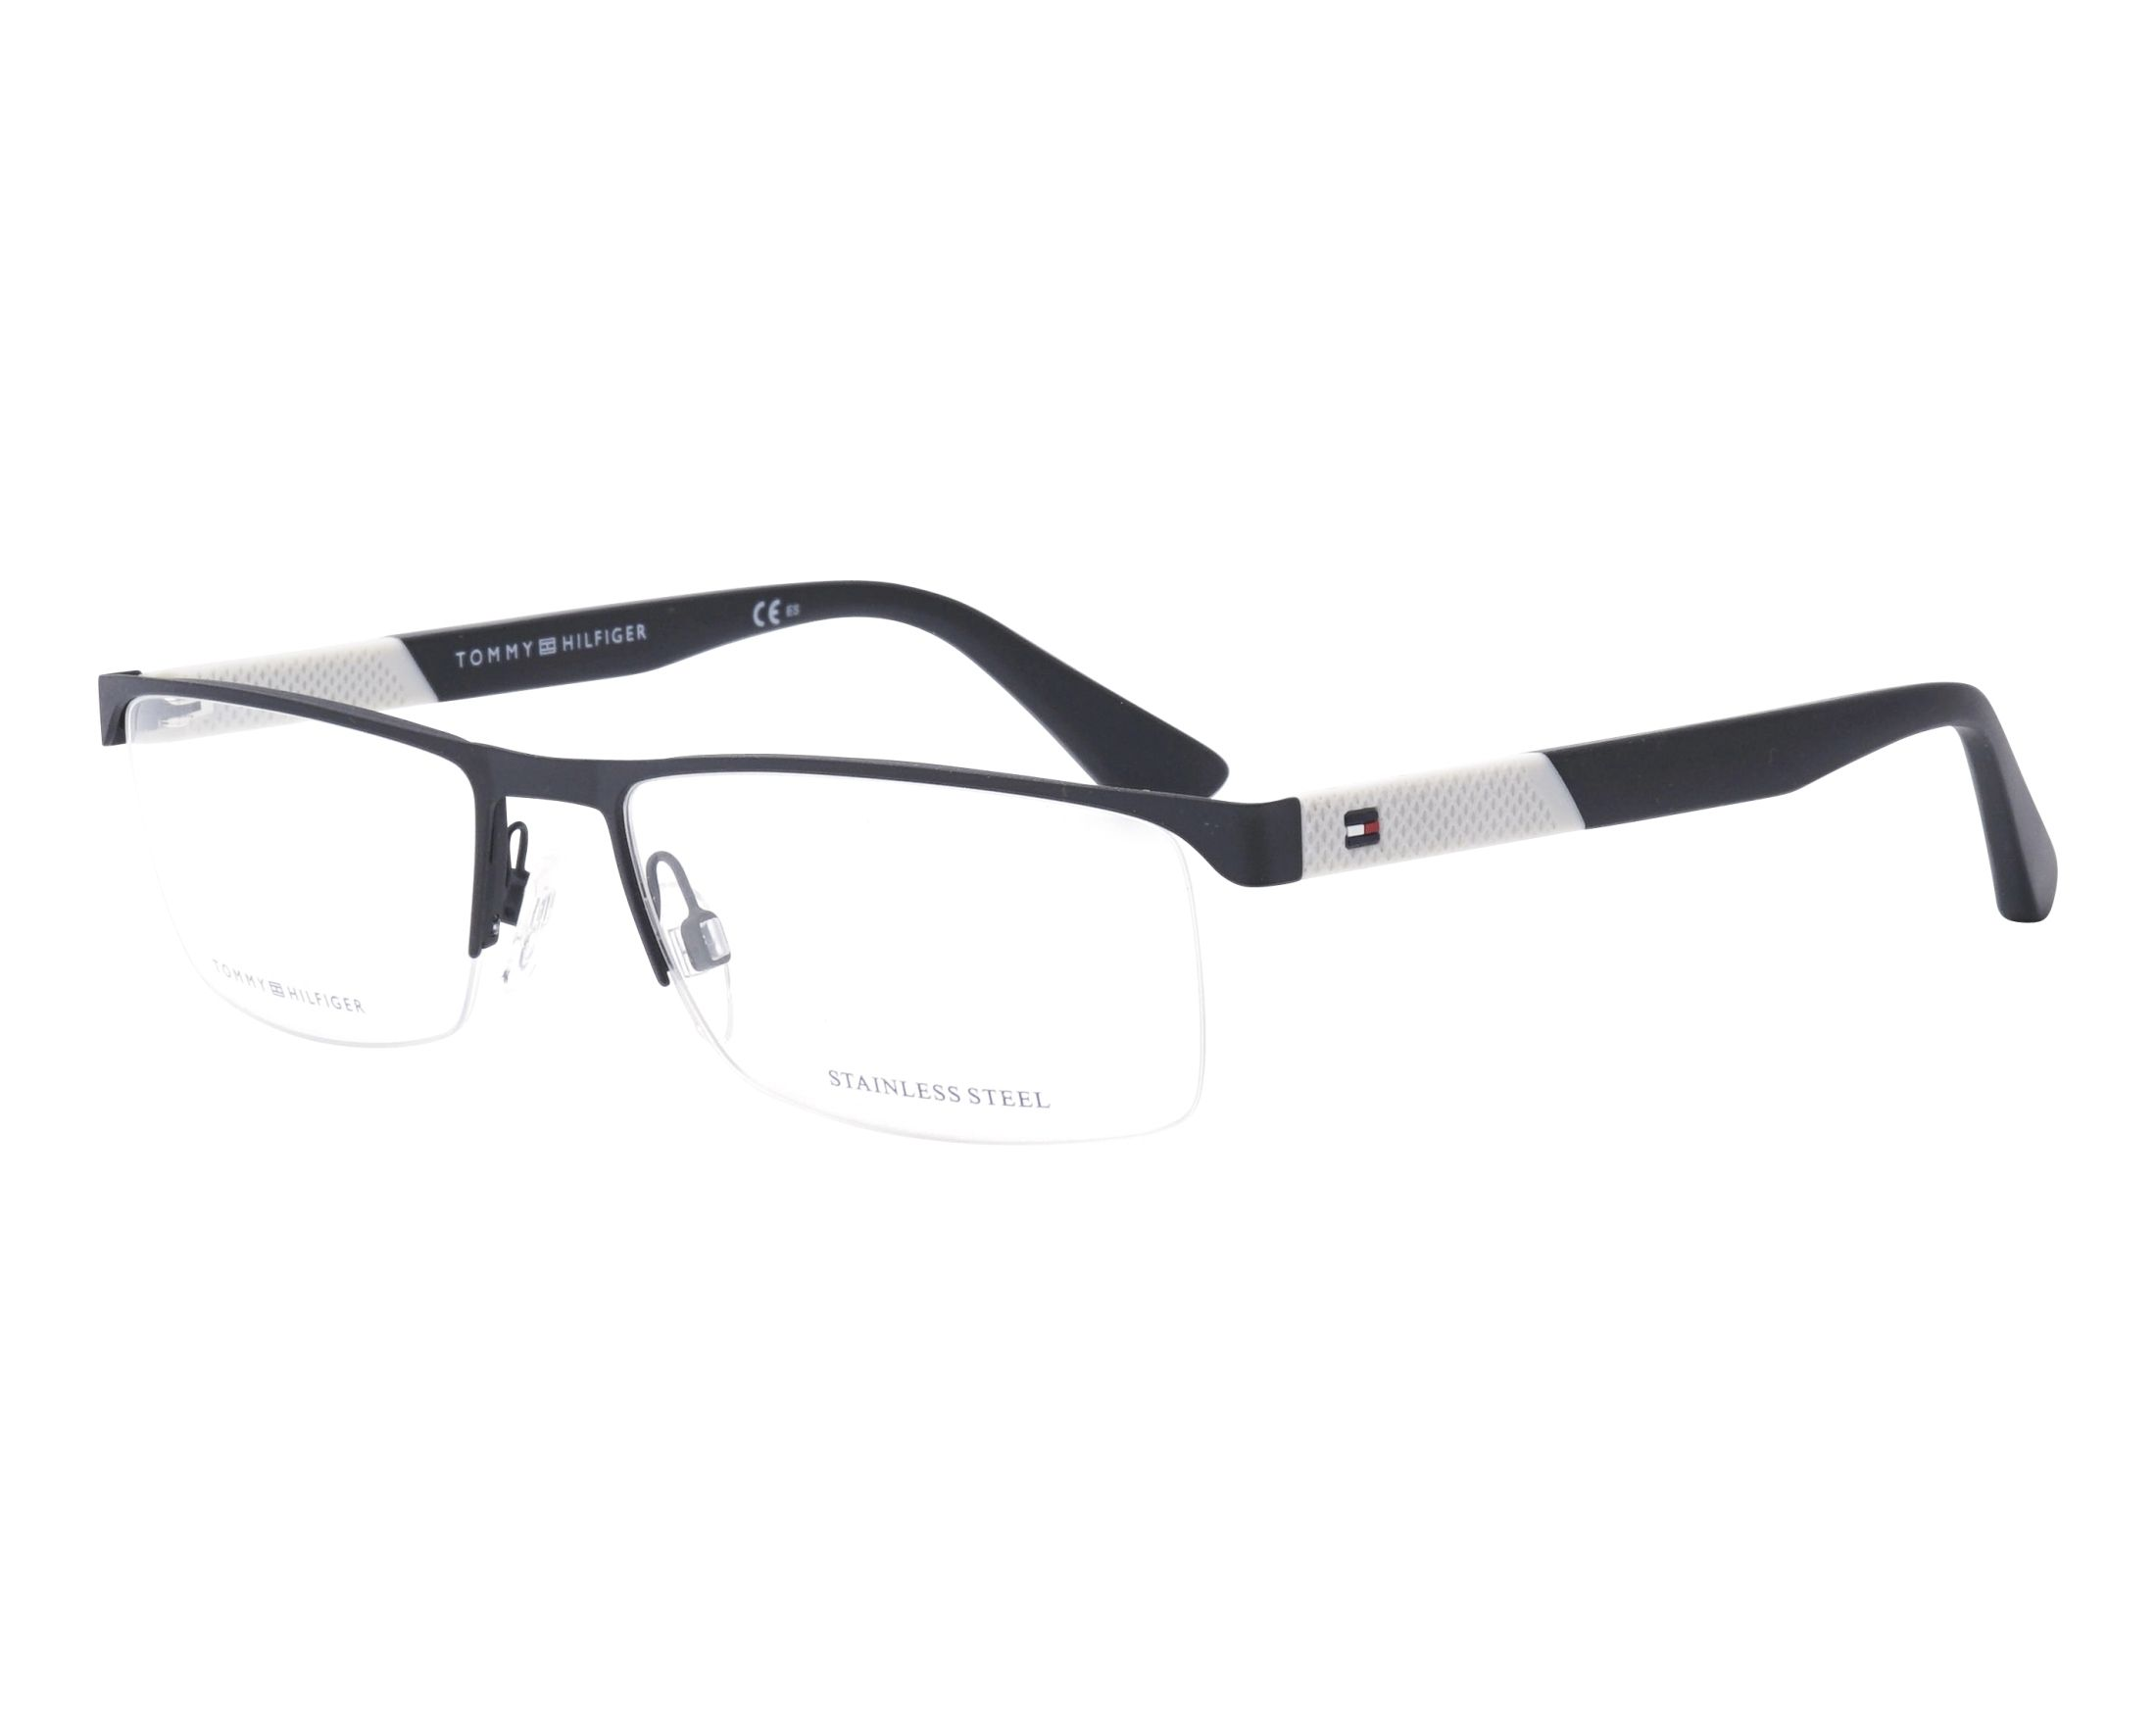 bf84201676a eyeglasses Tommy Hilfiger TH-1562 003 56-17 Black White profile view